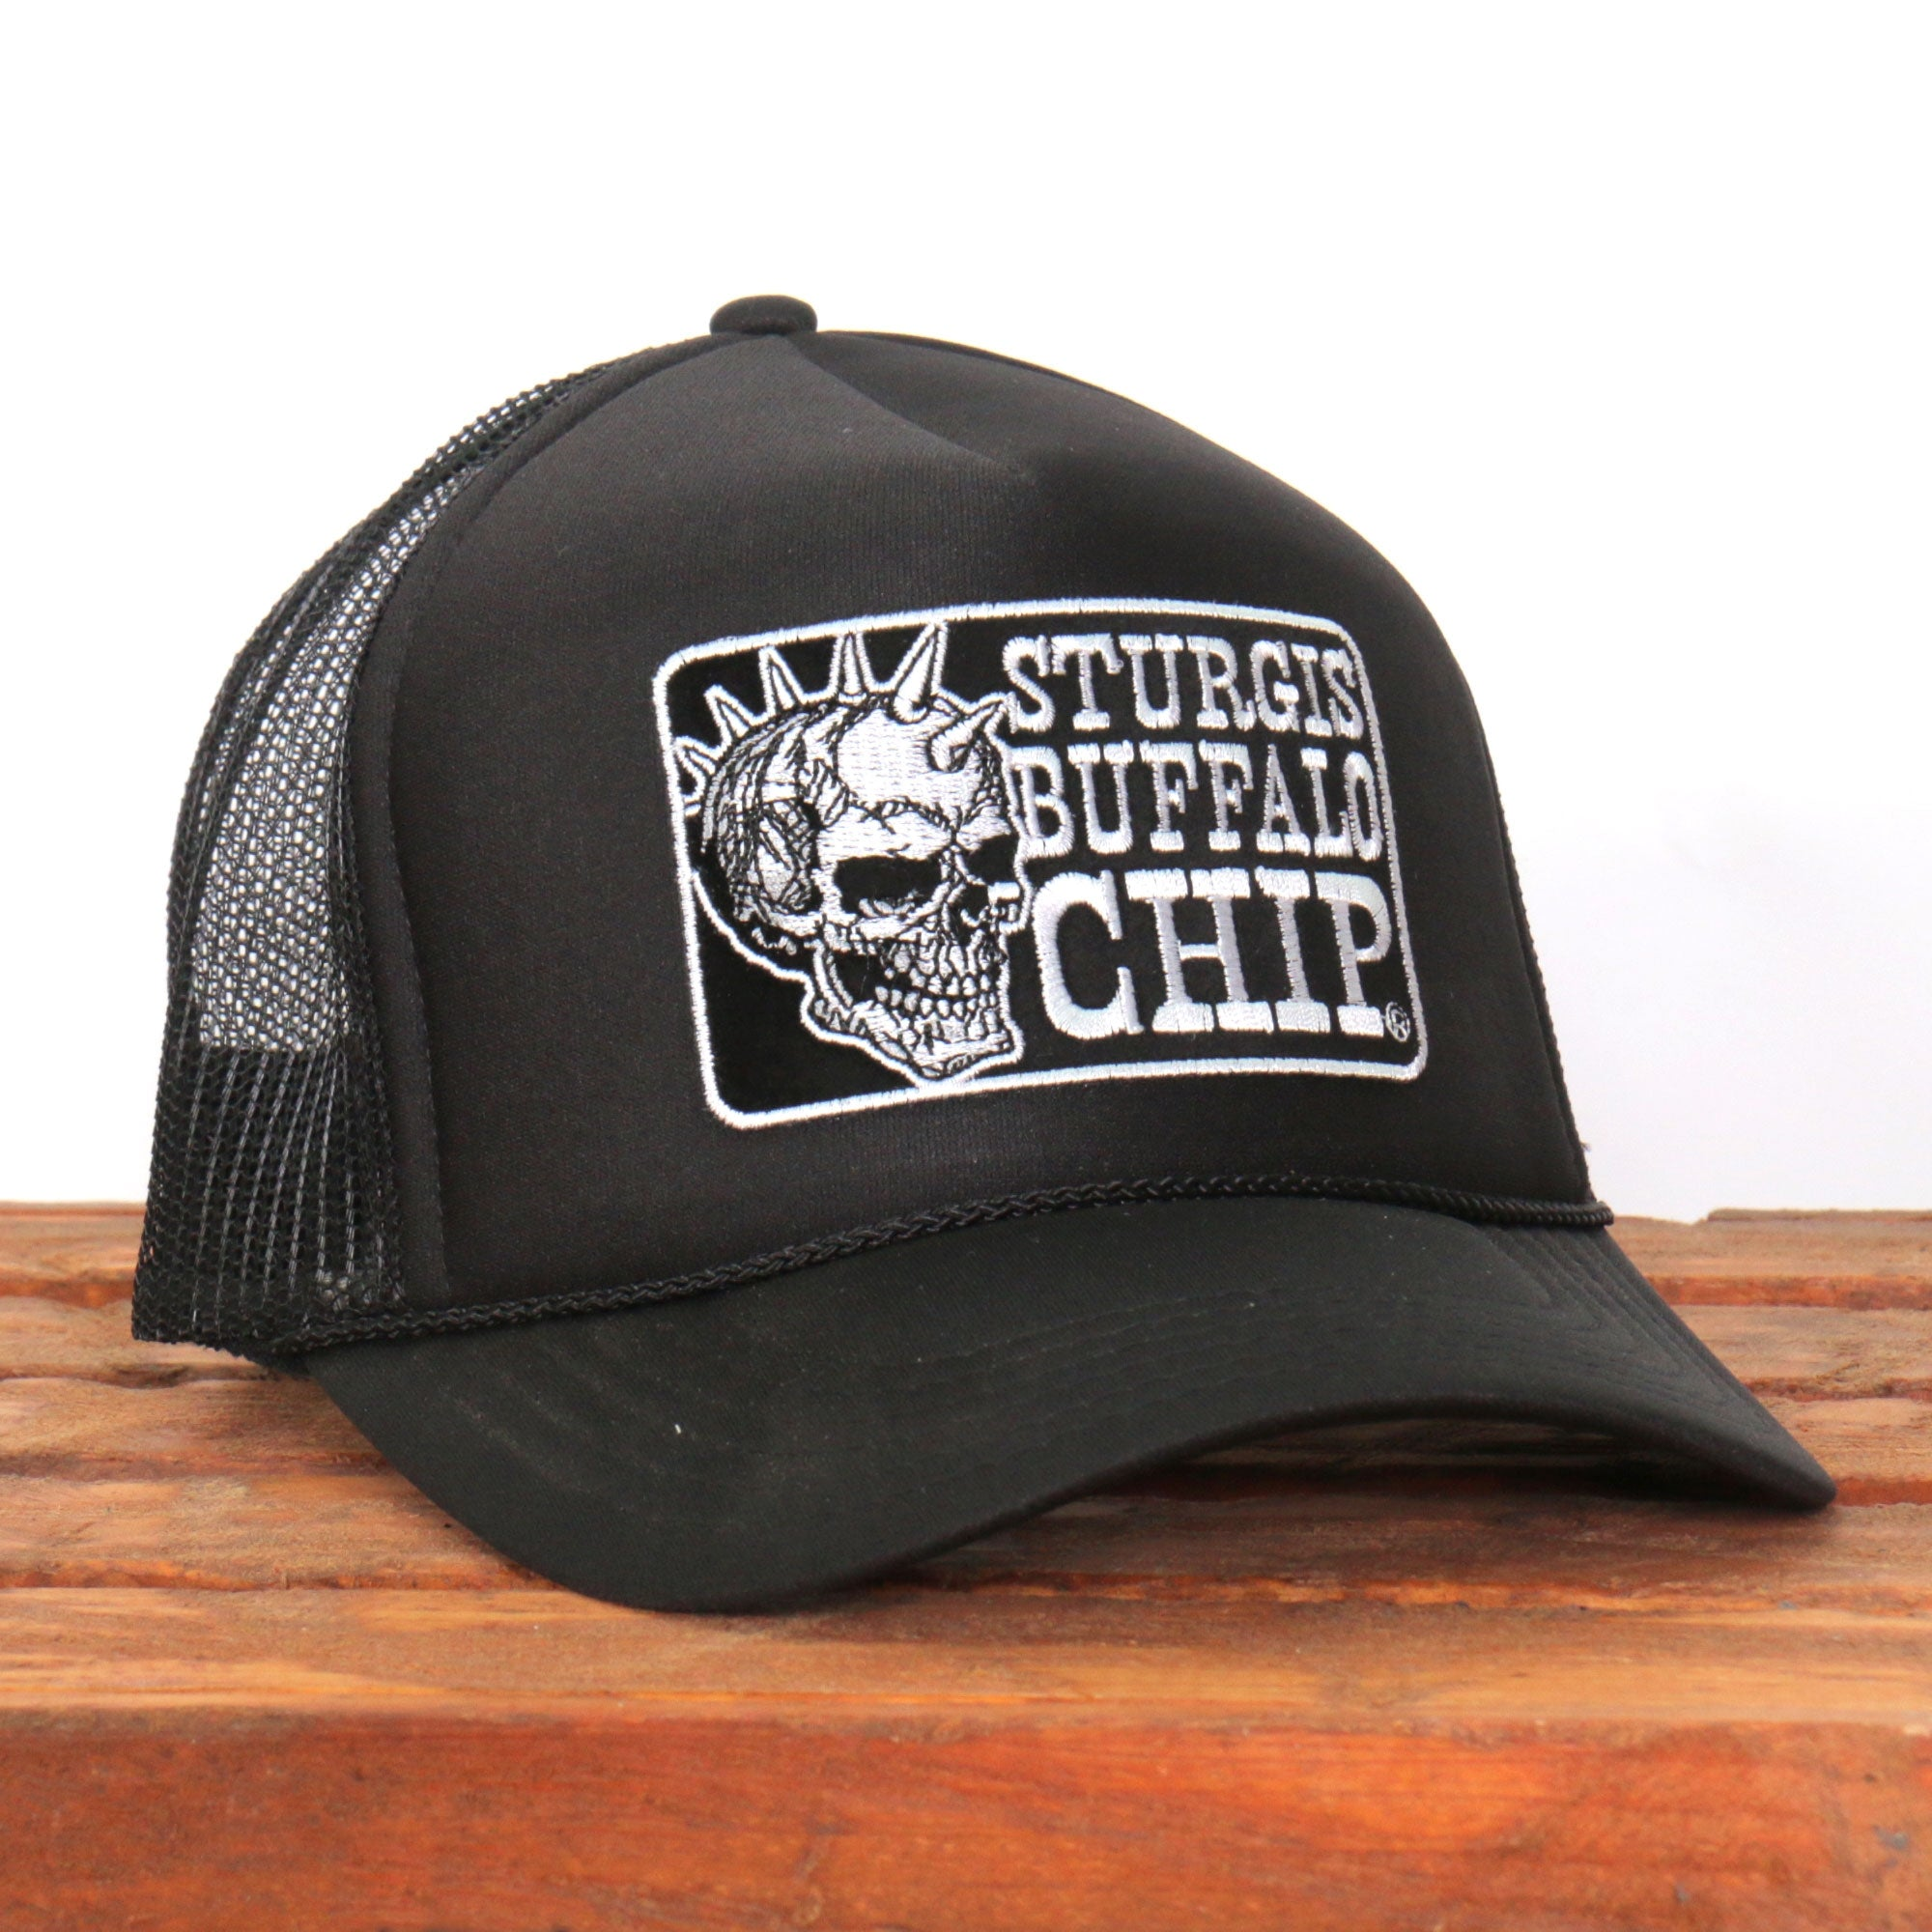 Official Sturgis Buffalo Chip Spiked Skull Trucker Hat